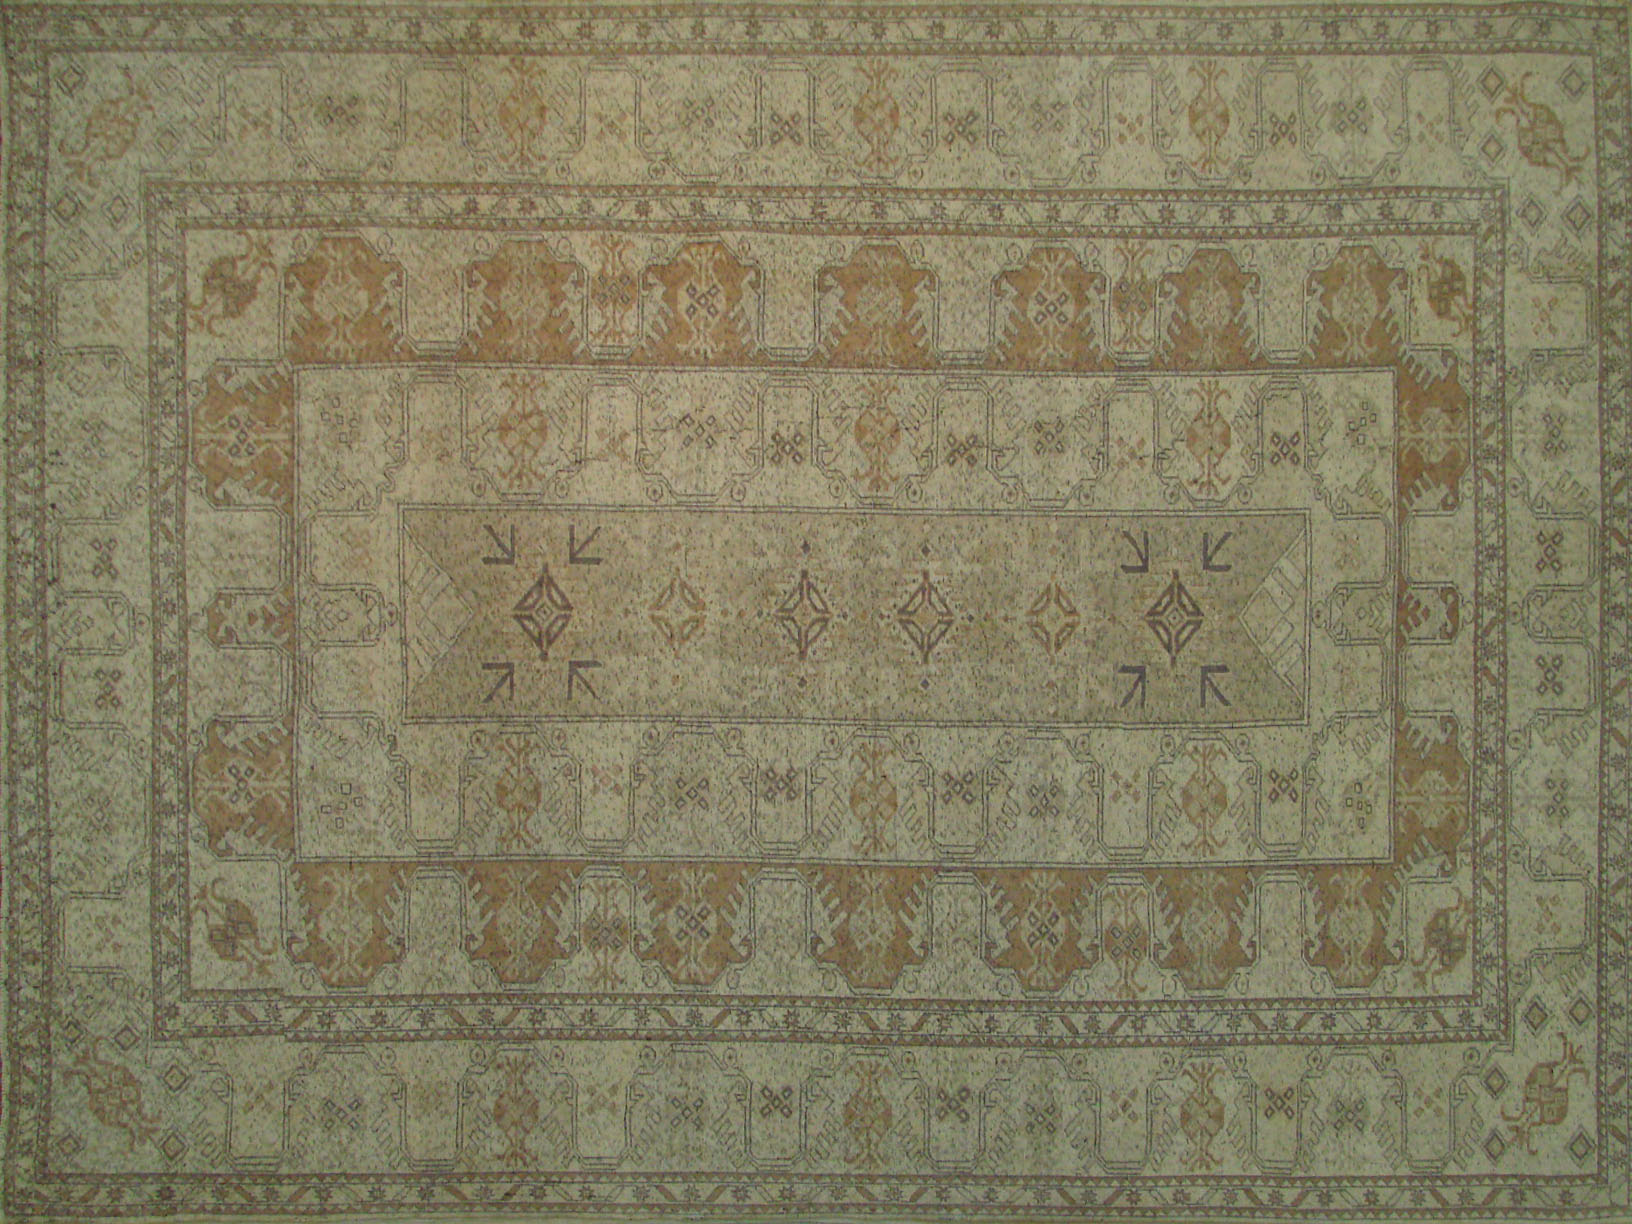 8x10 Oushak Hand Knotted Wool Area Rug - MR021649